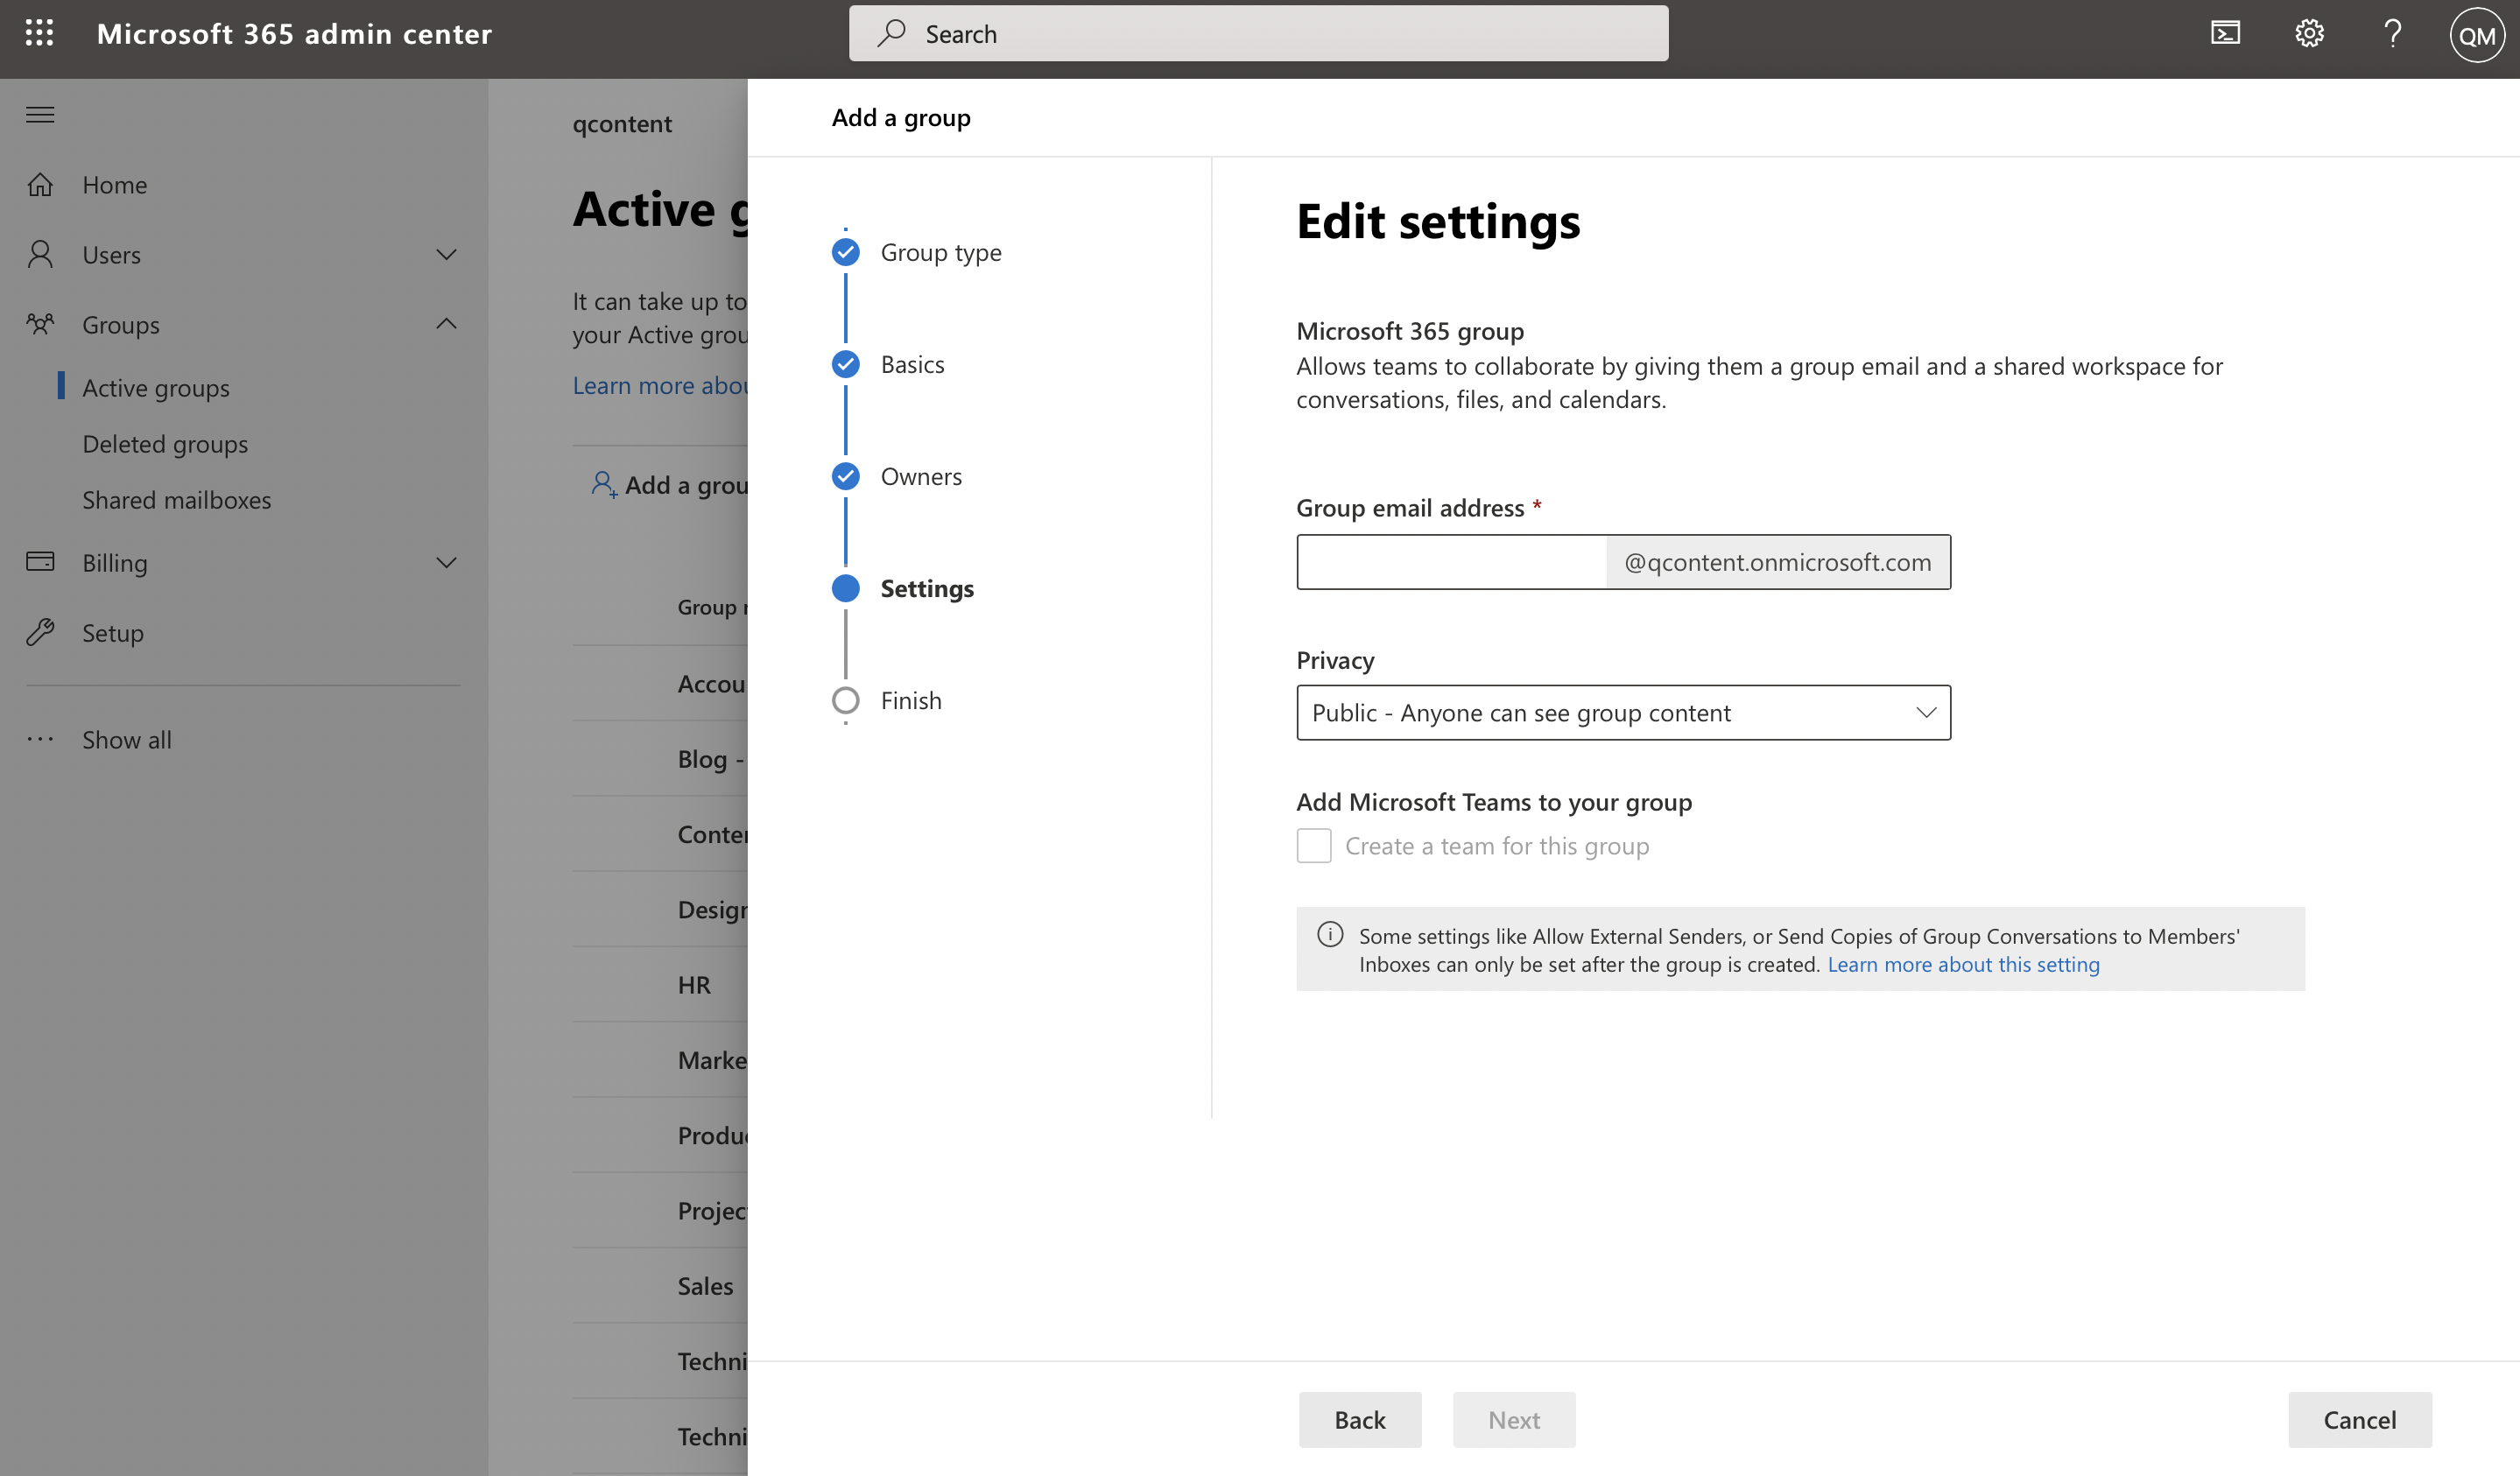 Screenshot of user setting group email address and privacy settings in Microsoft admin center